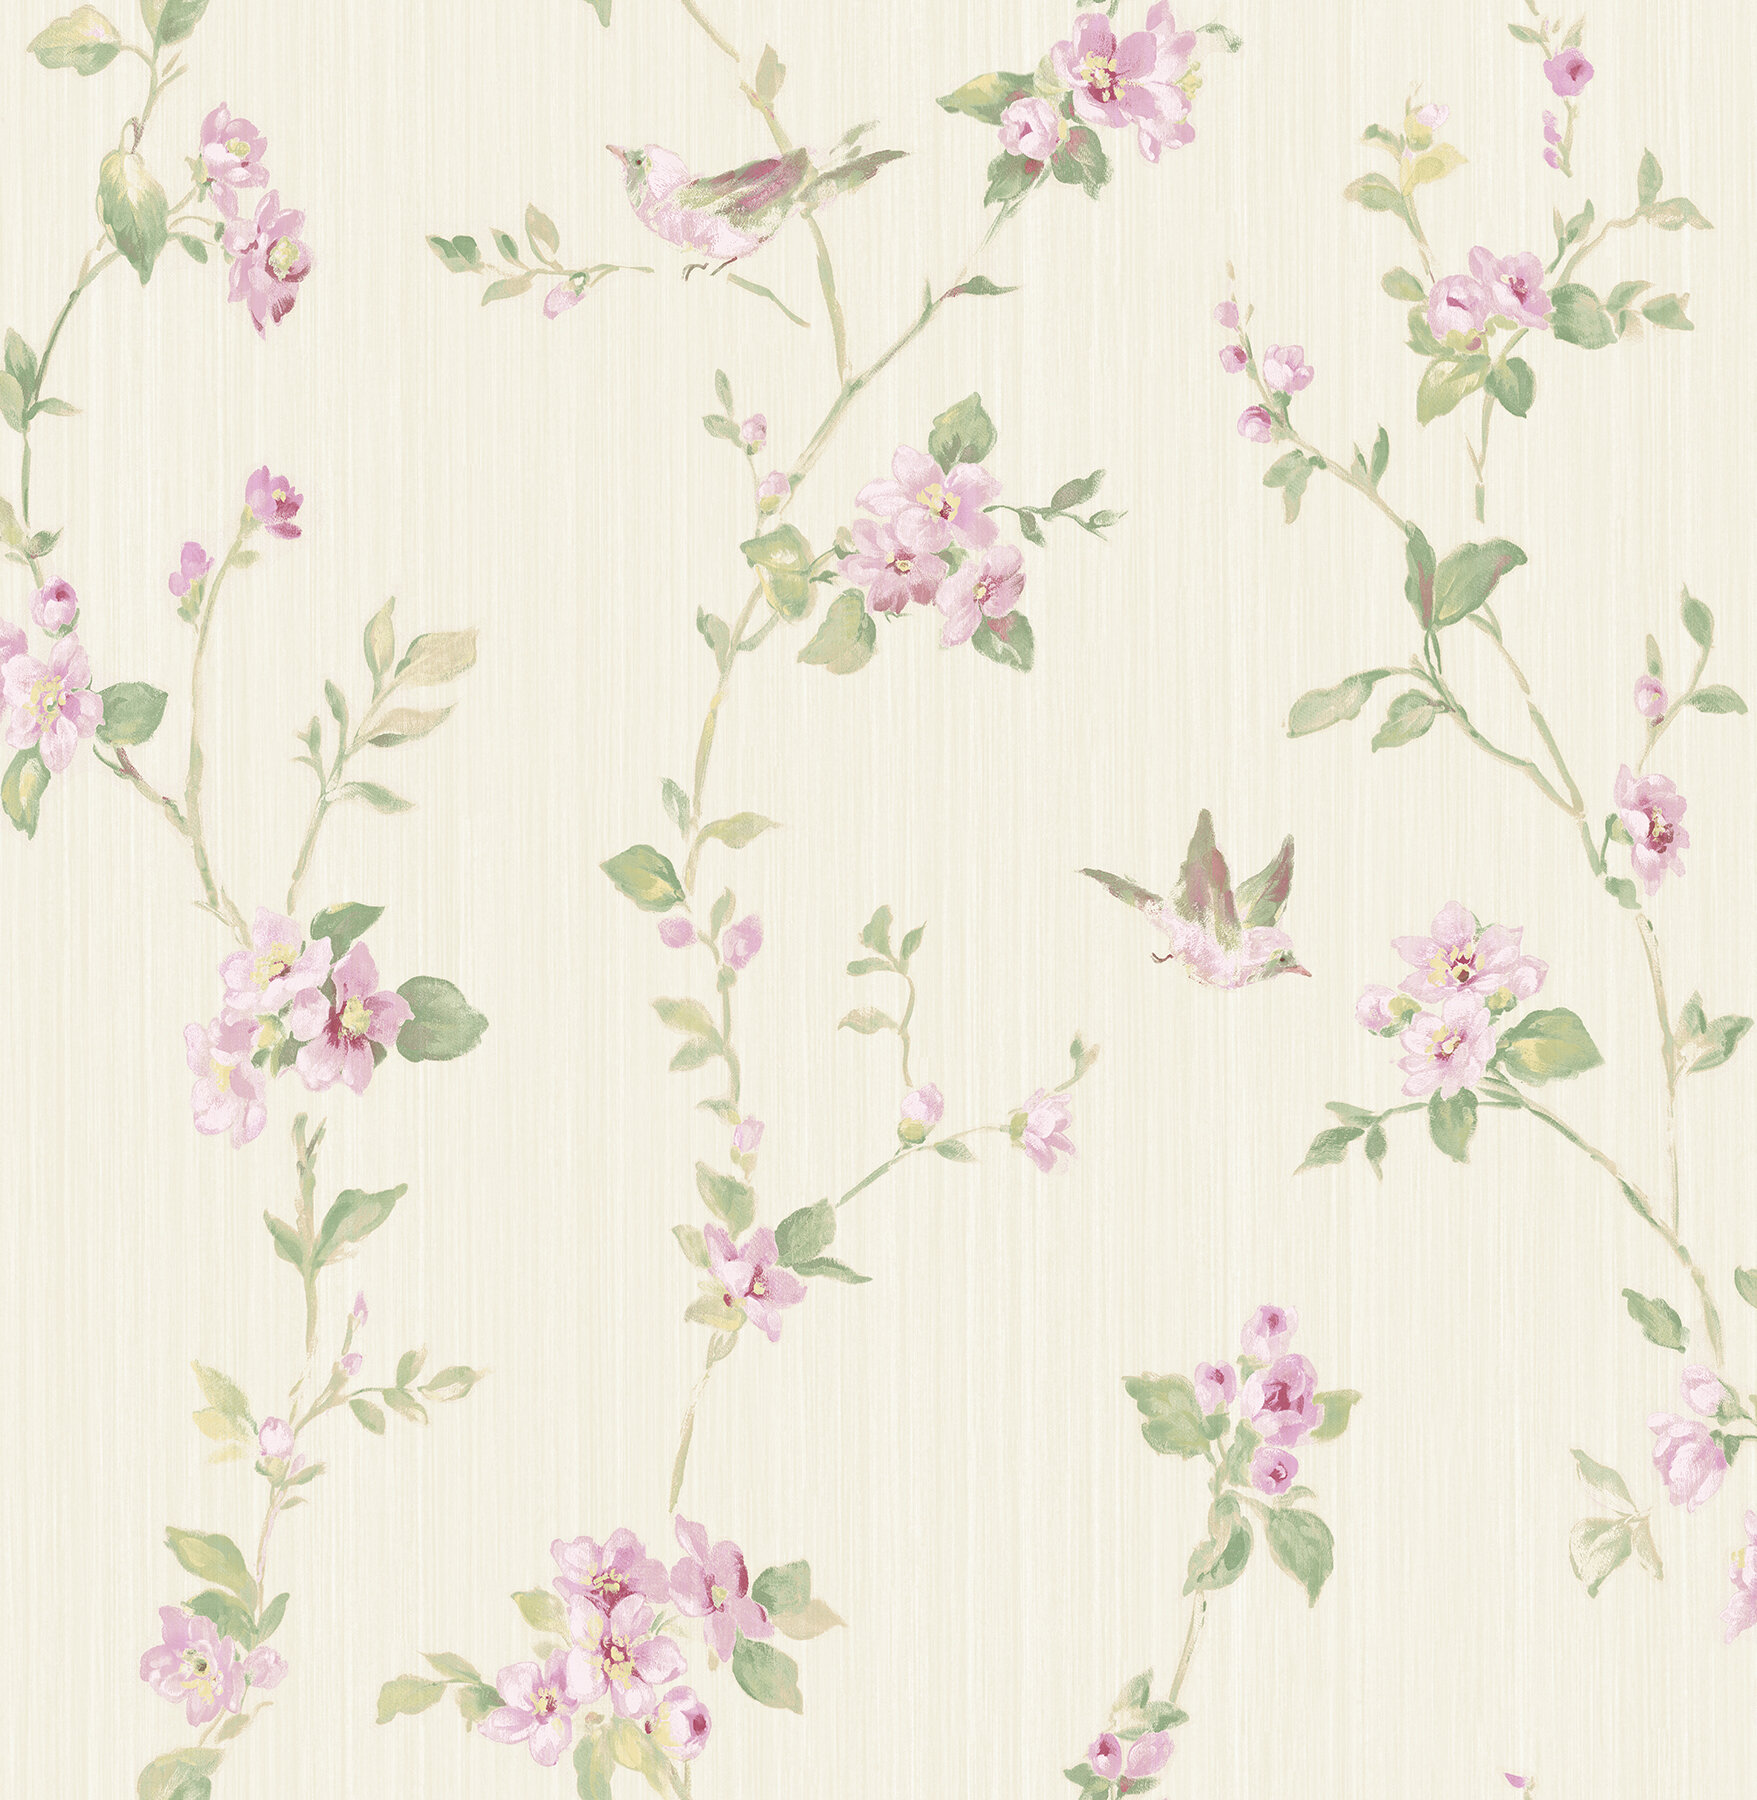 Ophelia Co Dichiera Floral Scroll 33 L X 20 5 W Wallpaper